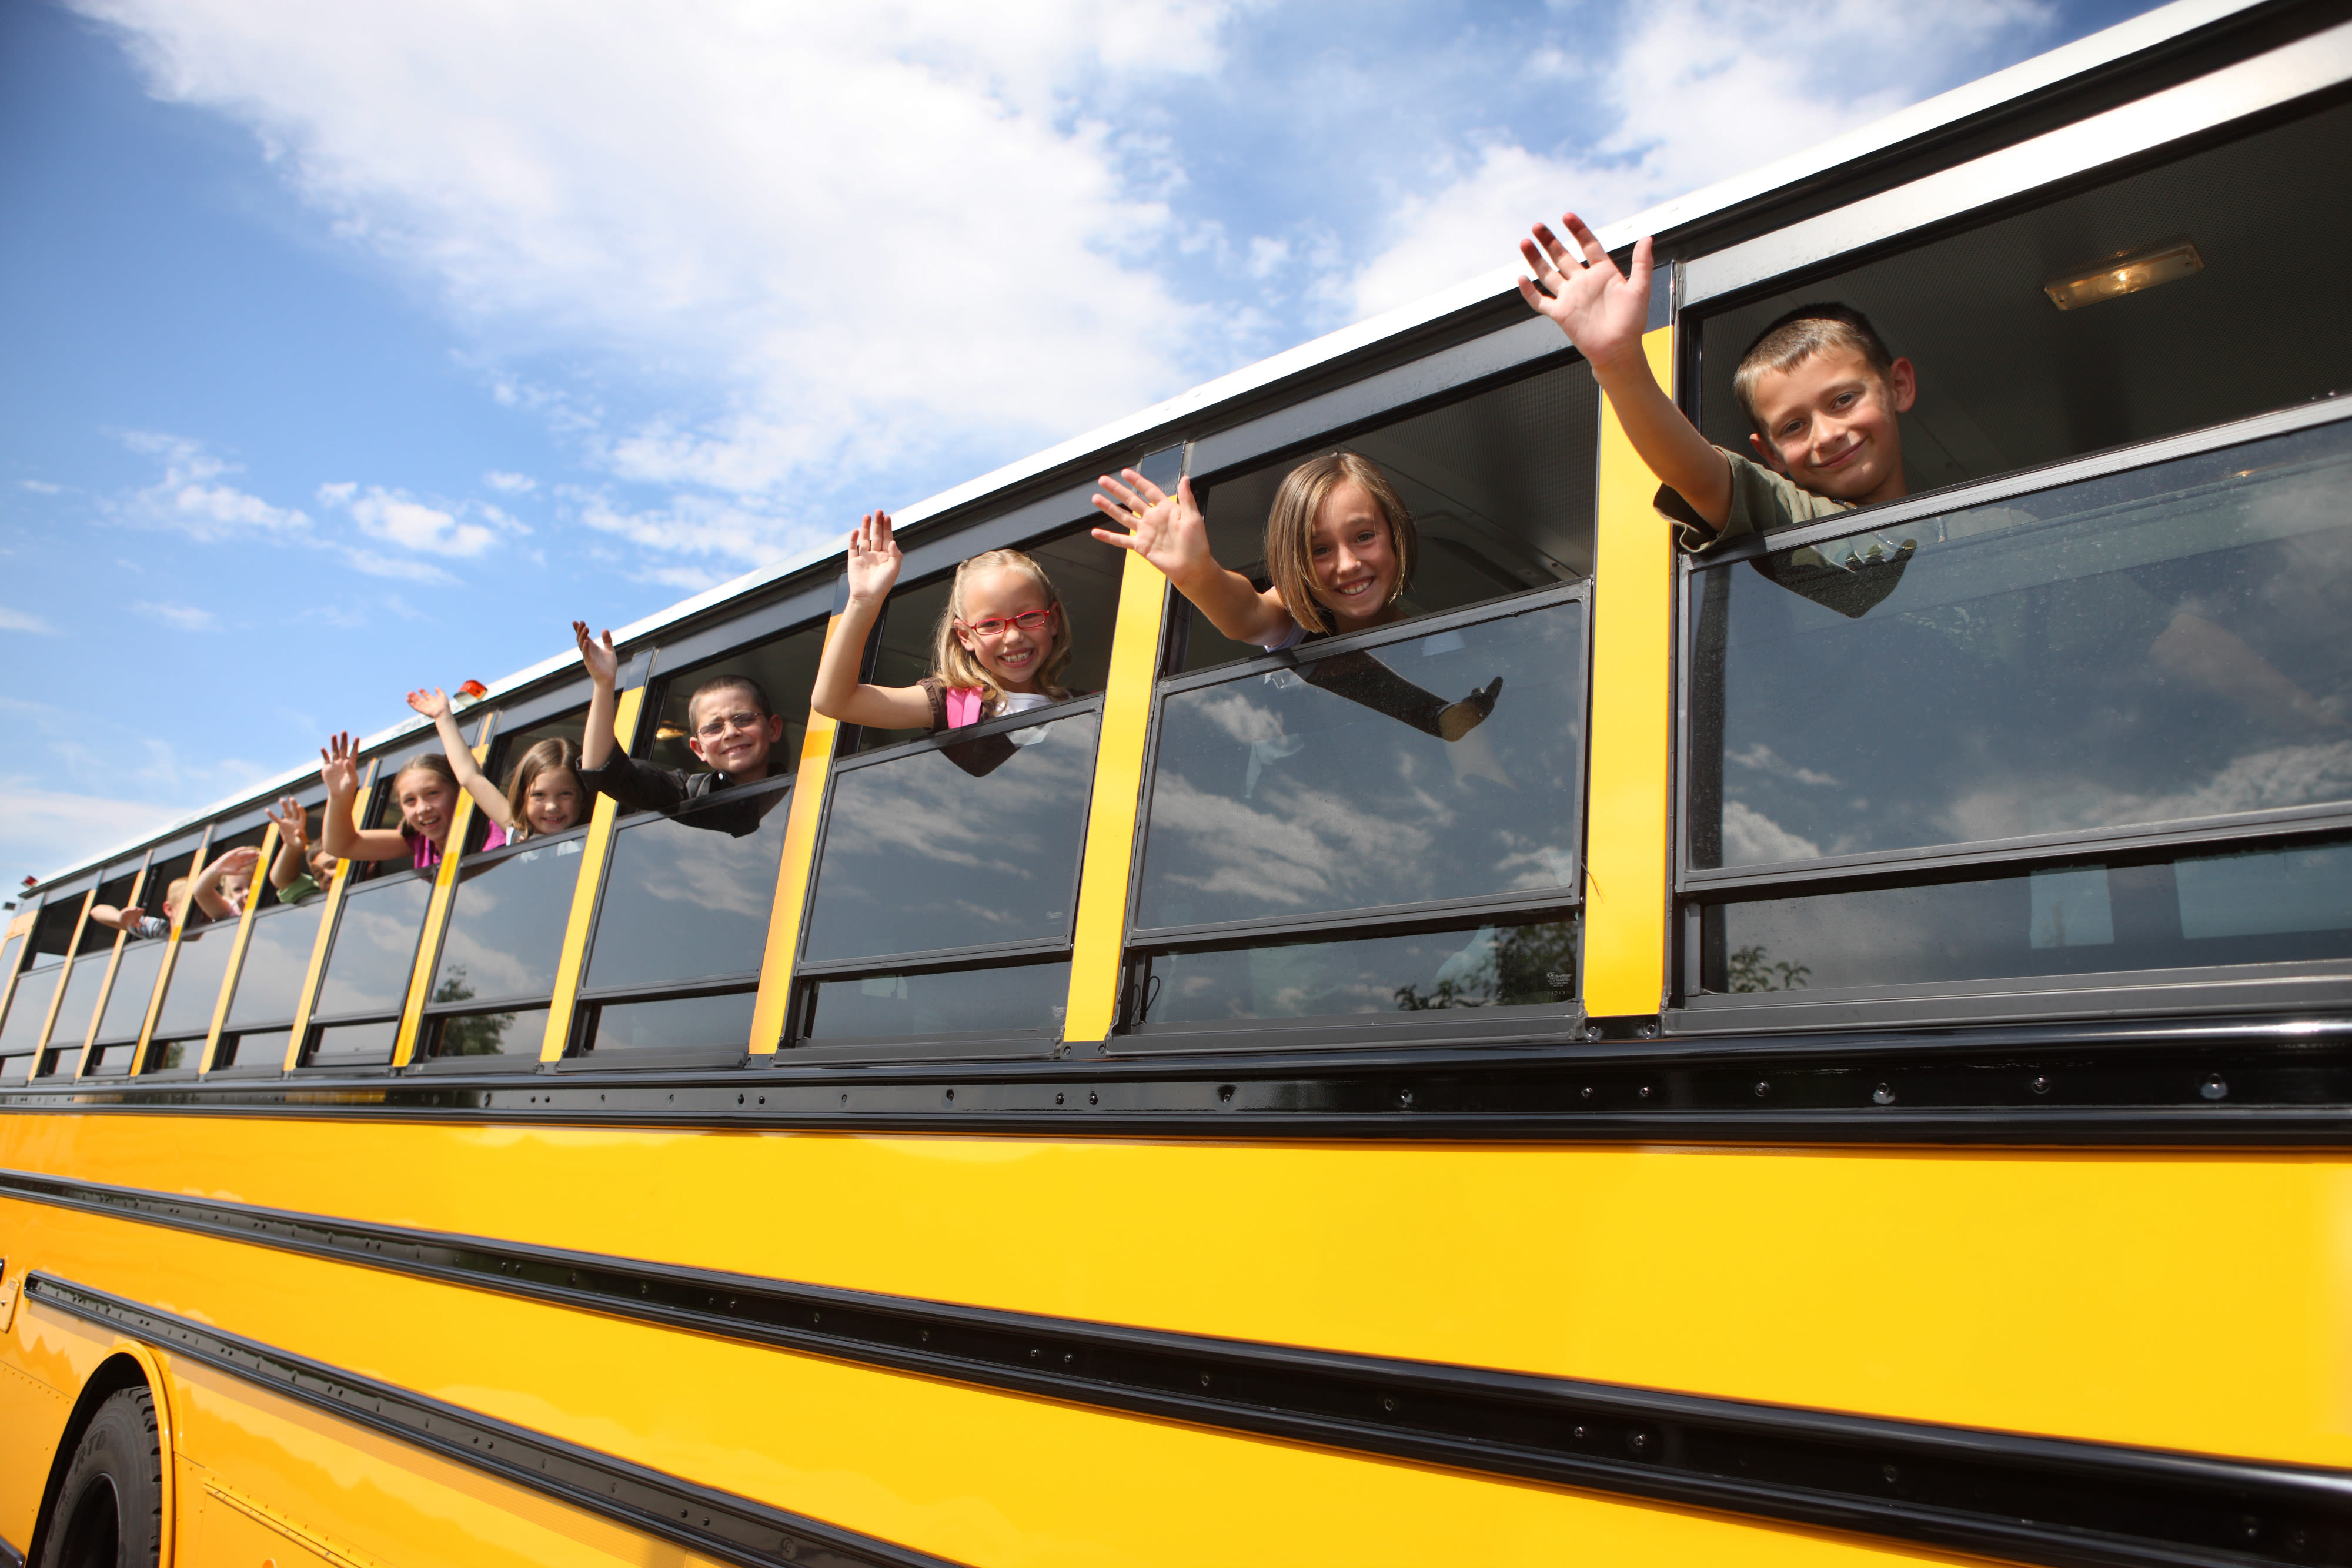 Kids on bus 2016 hn69gh